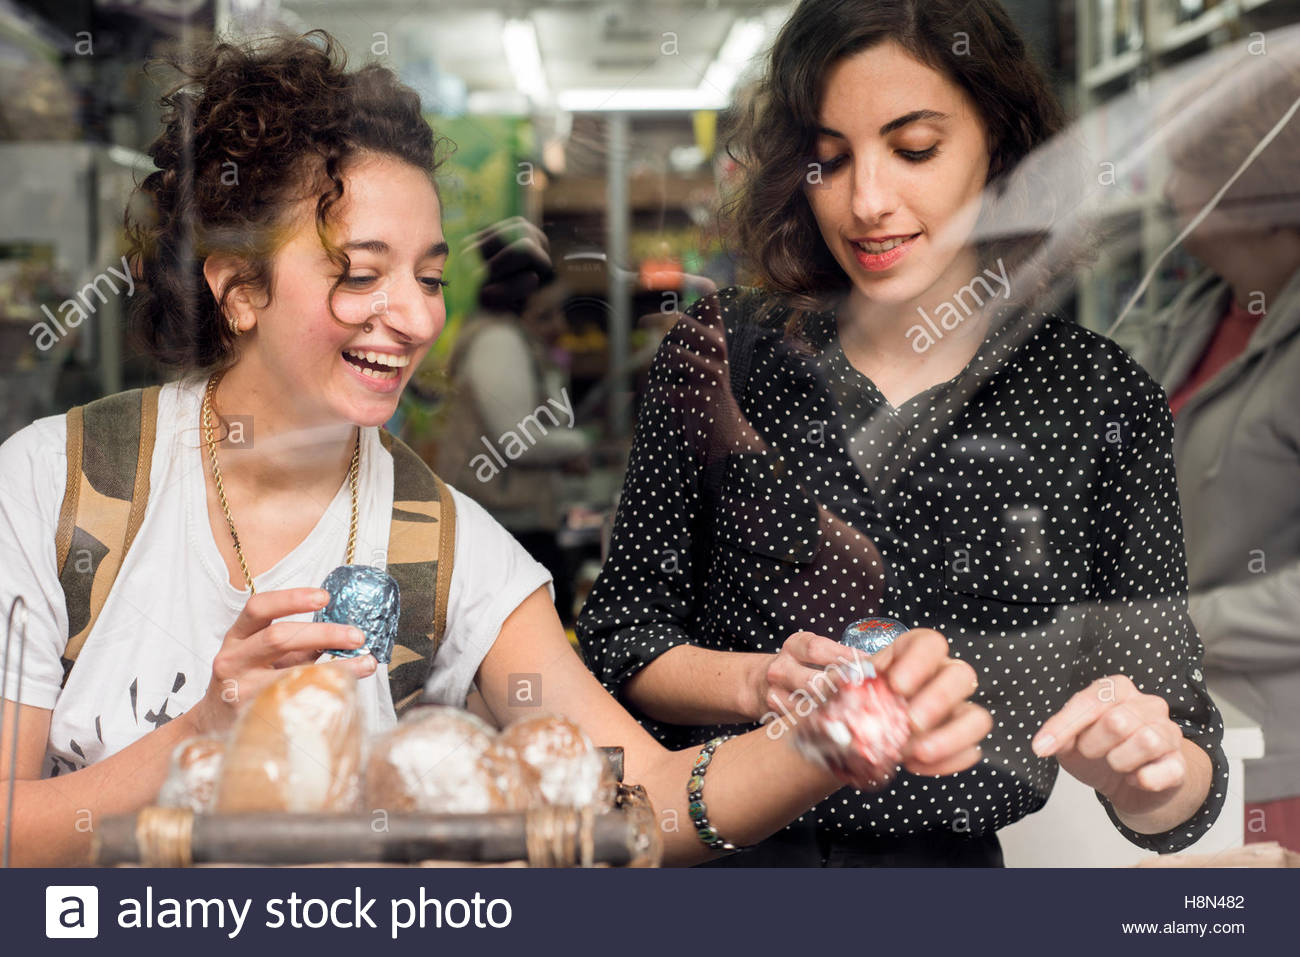 Two women choosing food - Stock Image